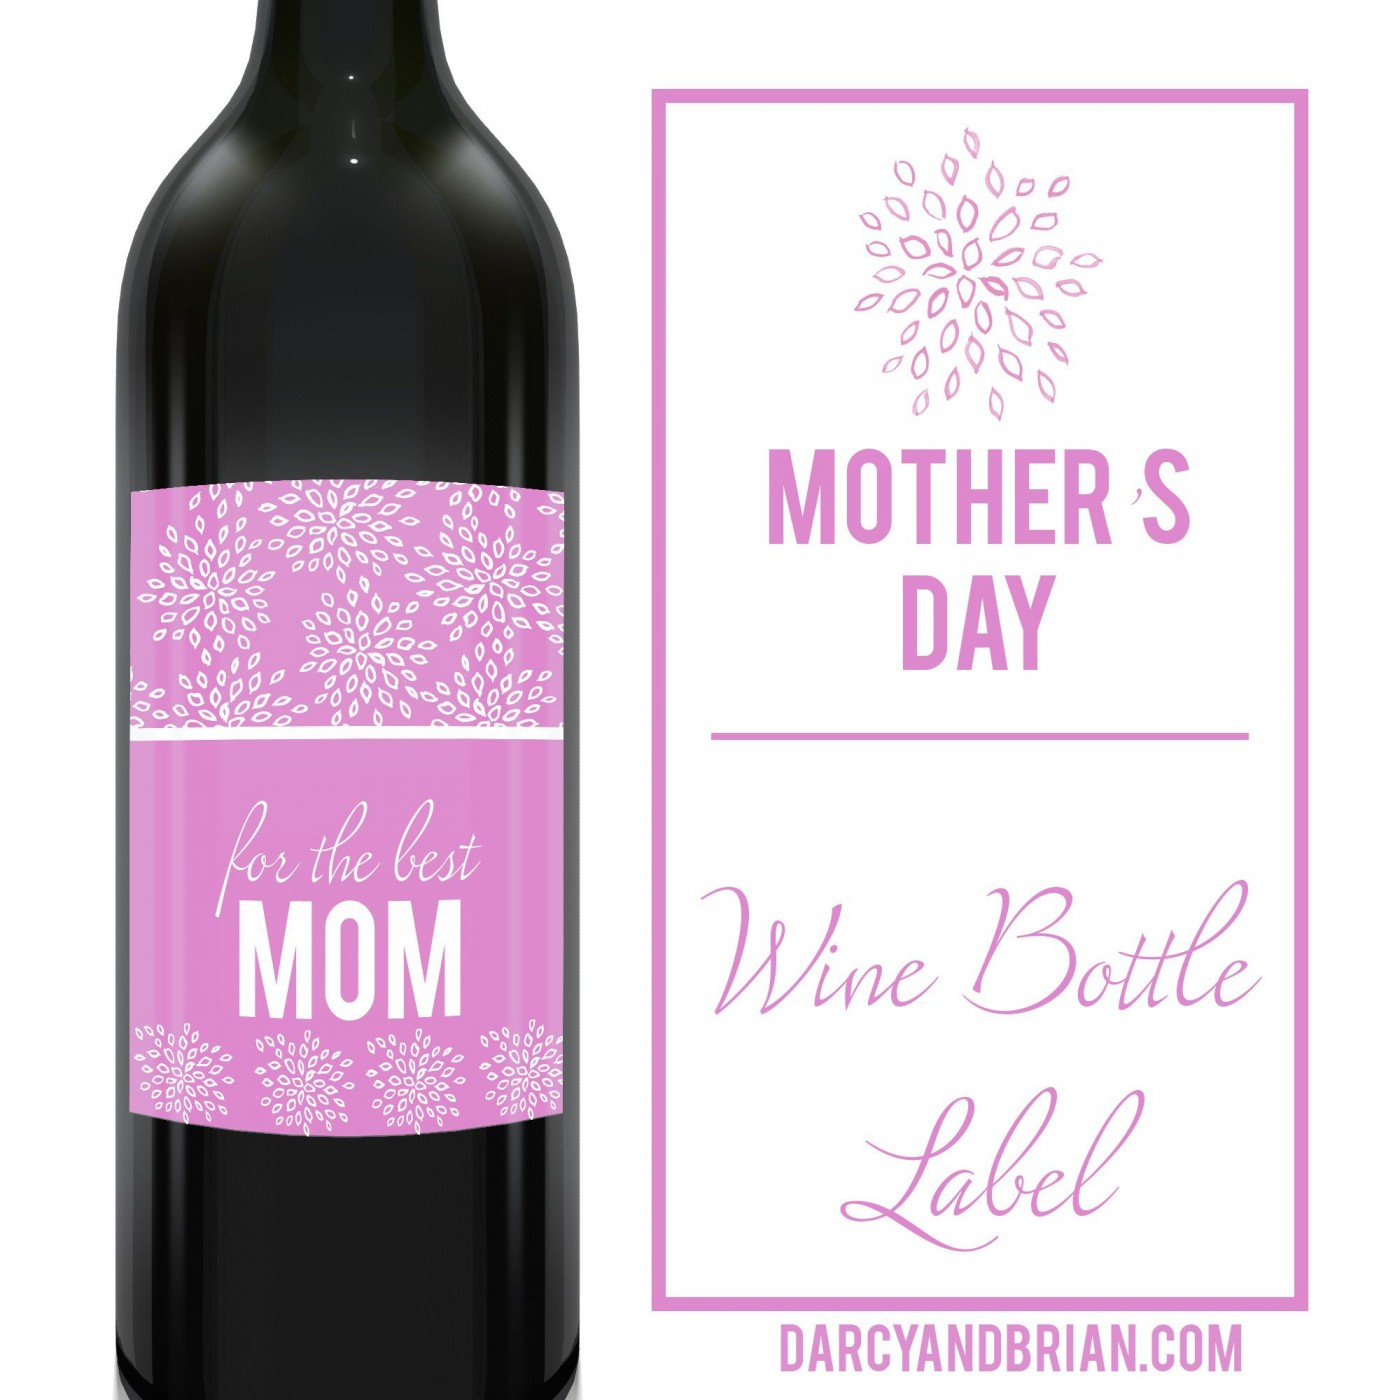 006 Awesome Free Wine Label Template Image  Bottle Microsoft Word Online Psd1400